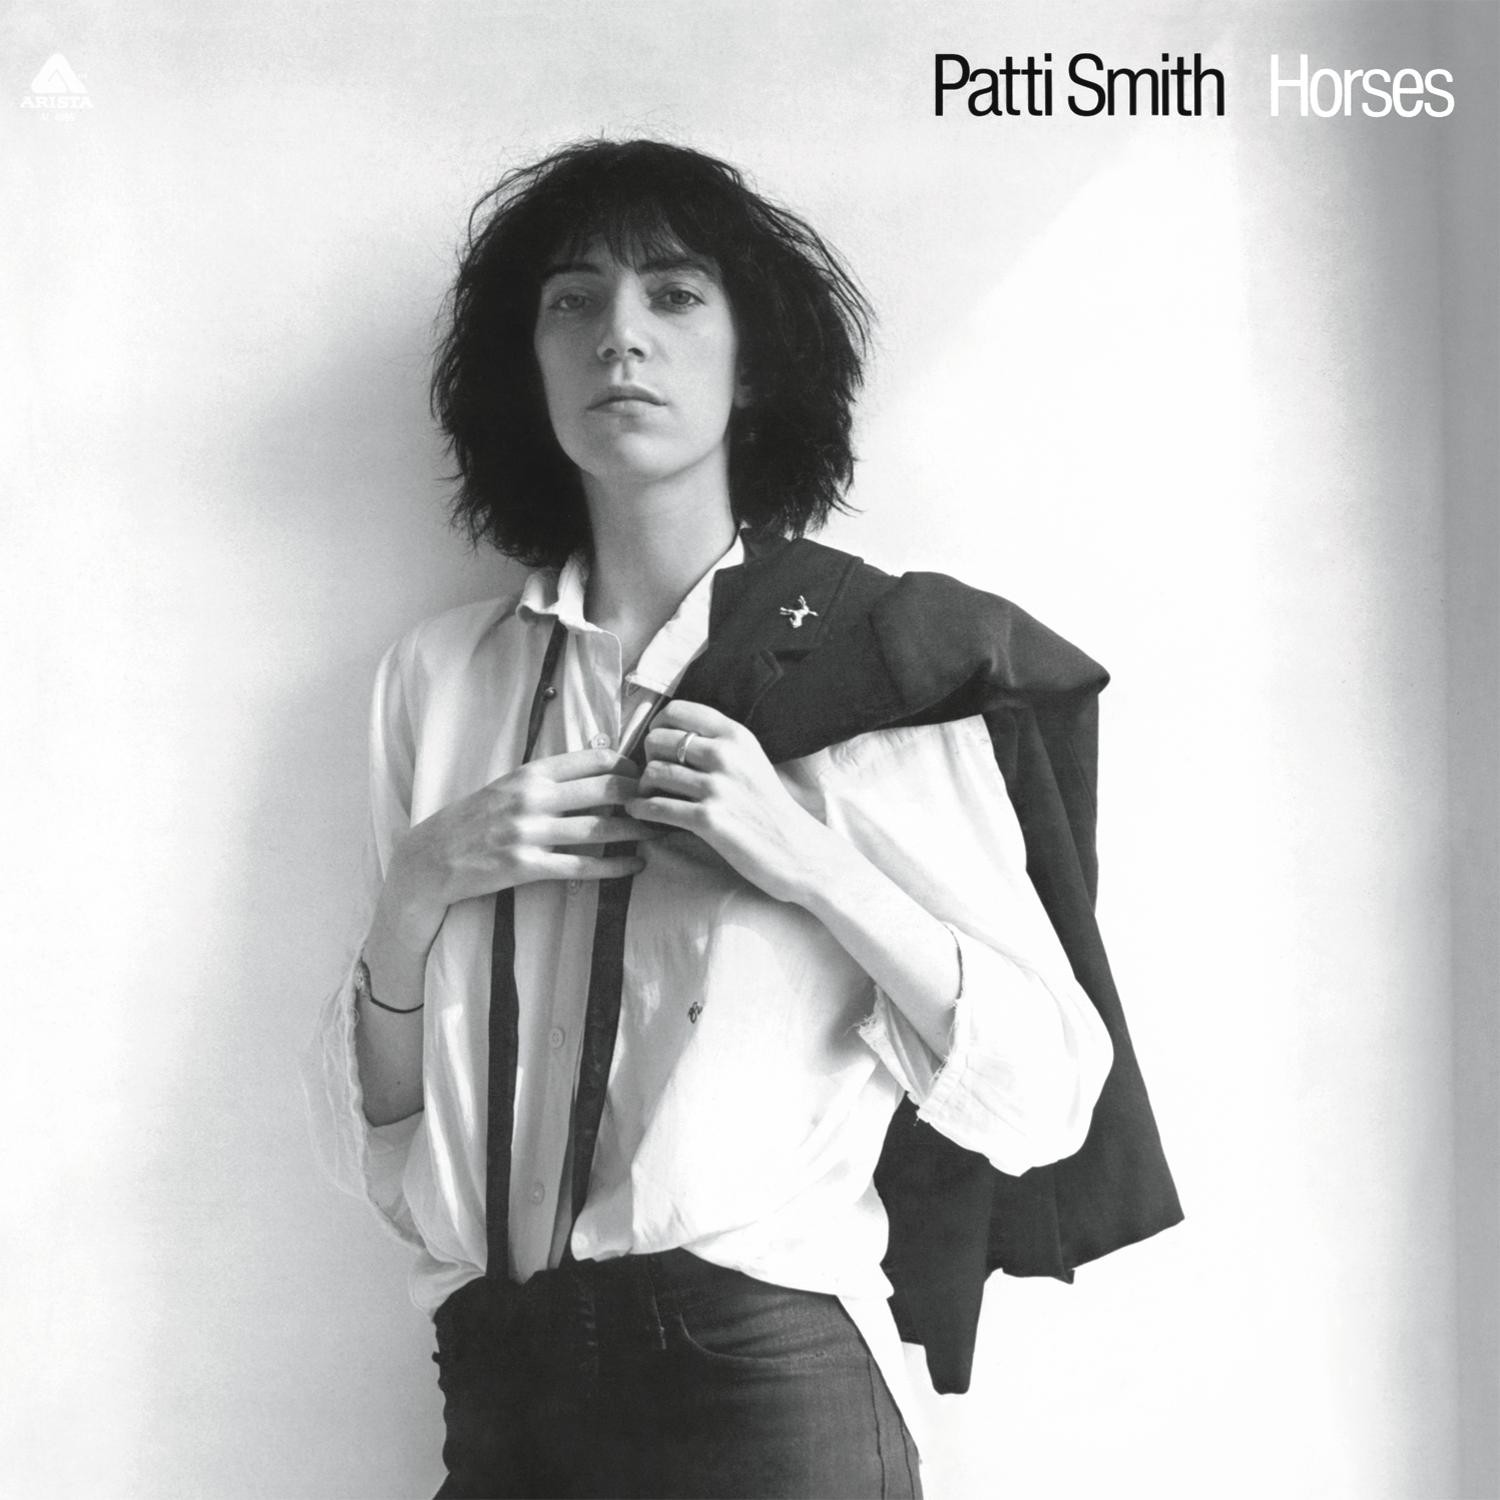 Patti Smith - Horses LP